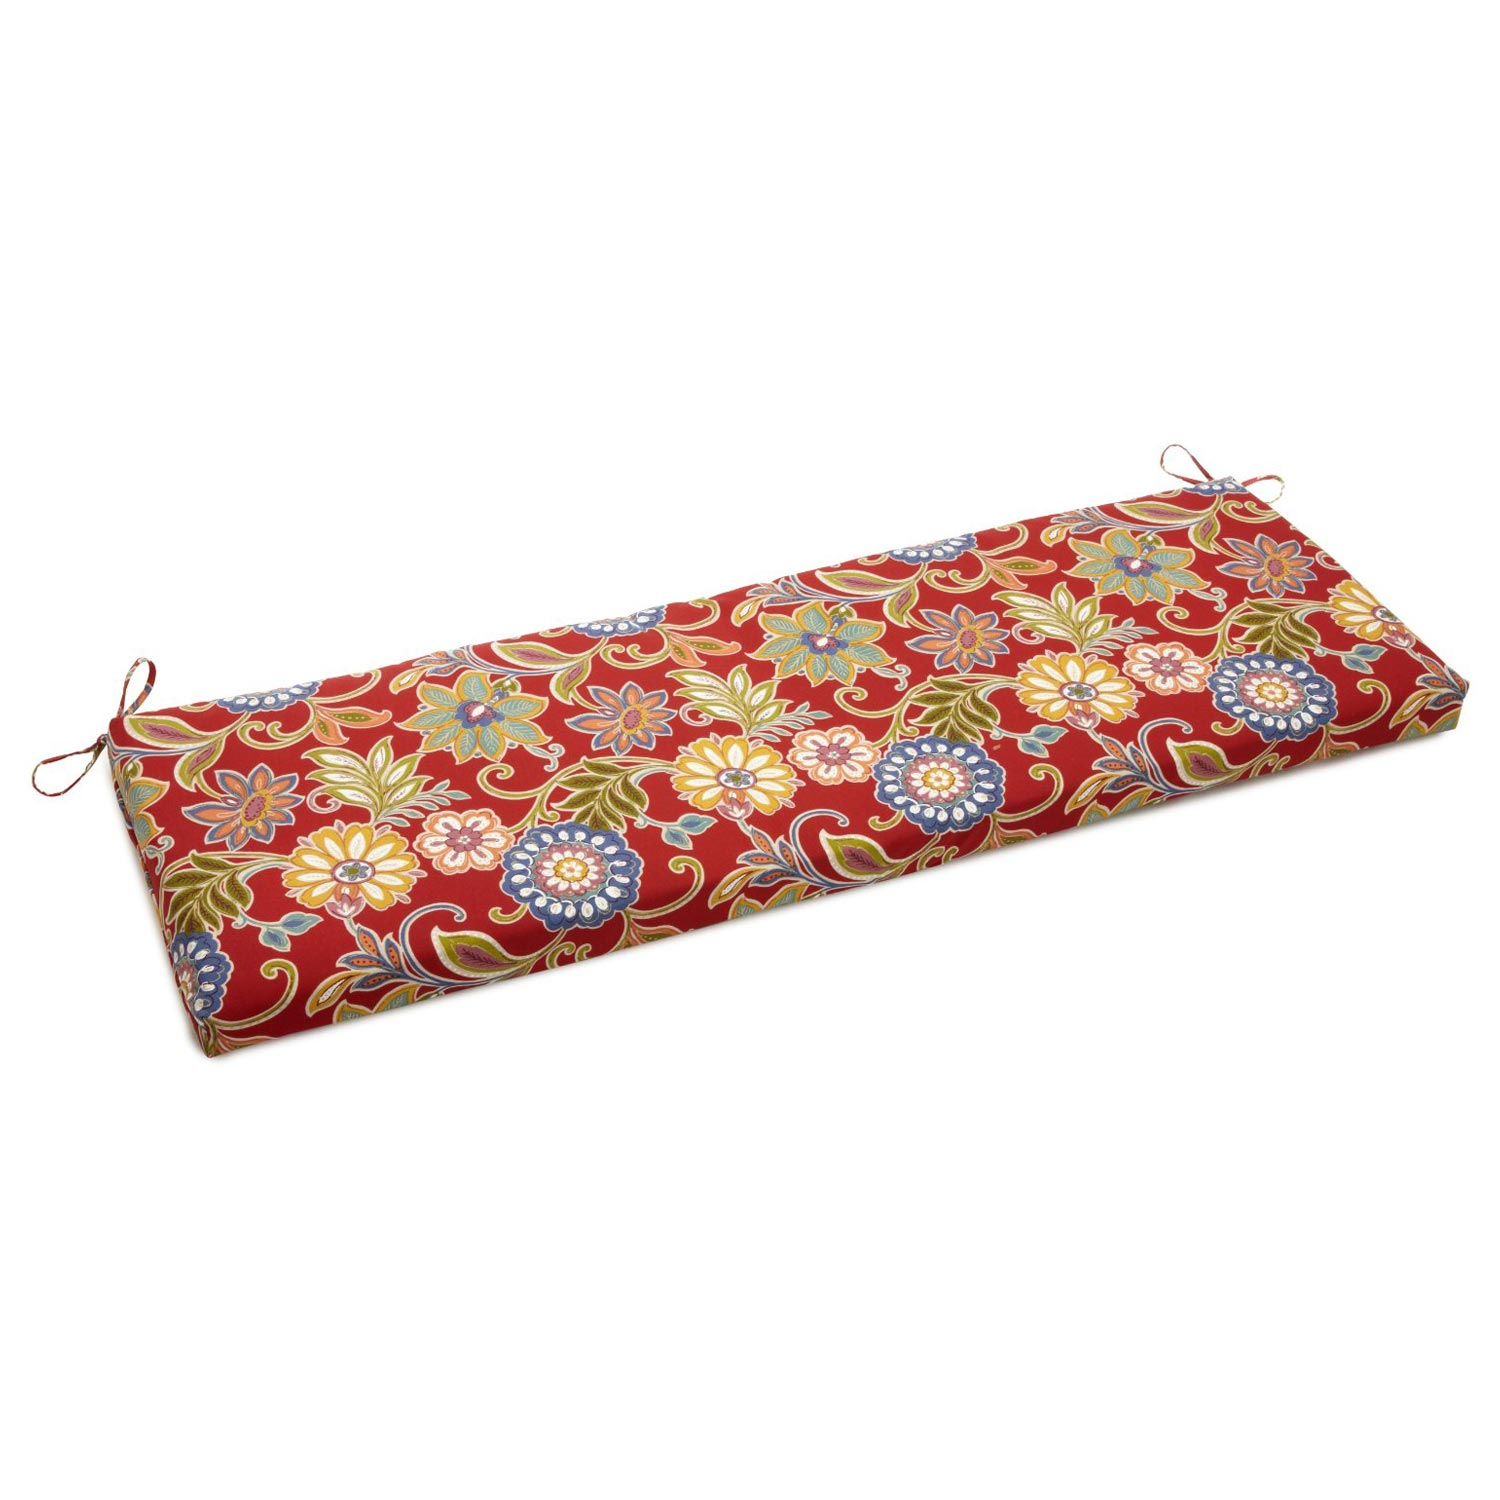 "57"" x 19"" Outdoor Bench Cushion - Ties, Patterned Fabric - BLZ-957X19-REO"